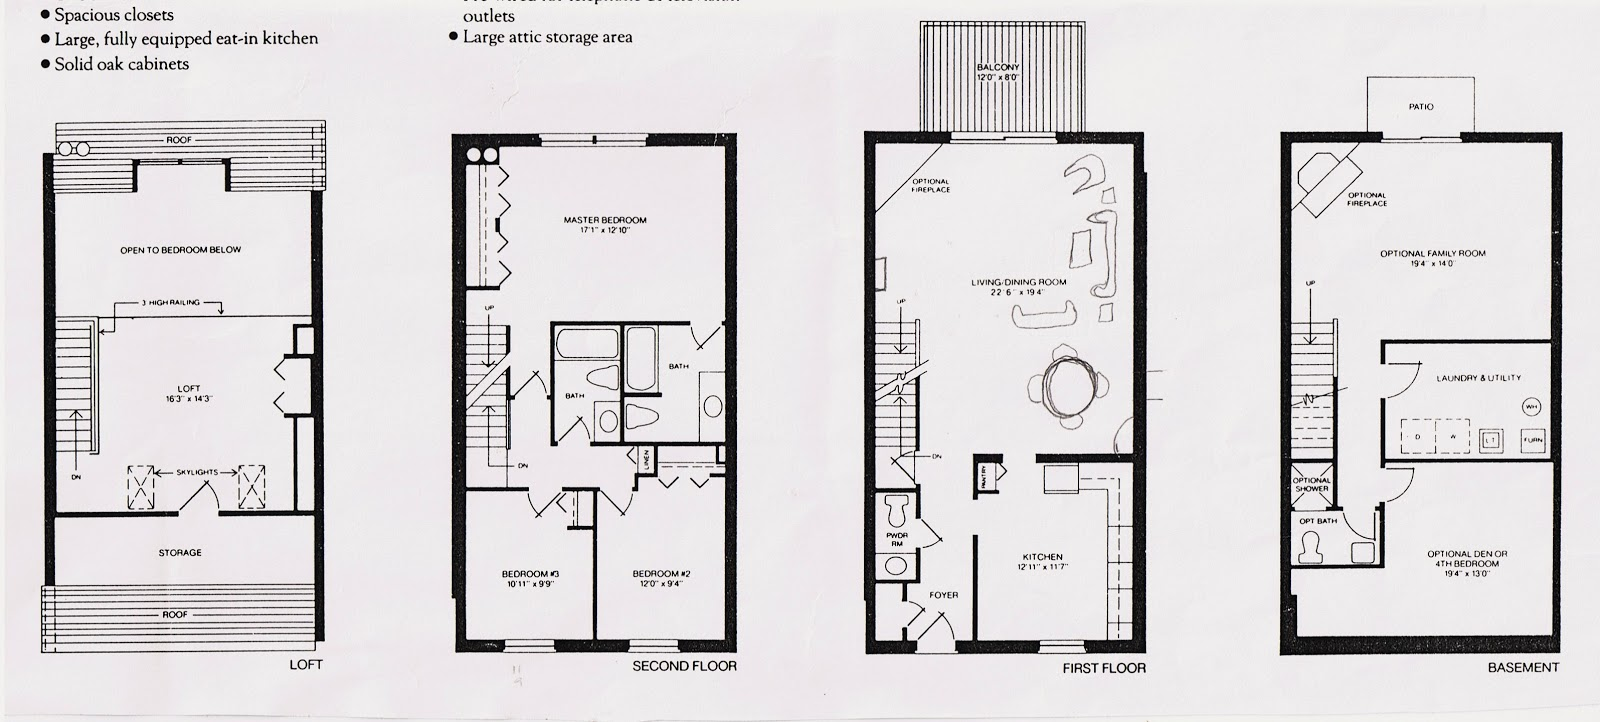 Bathroom Floor Plans For 7 X 10 | Home Decorating ...